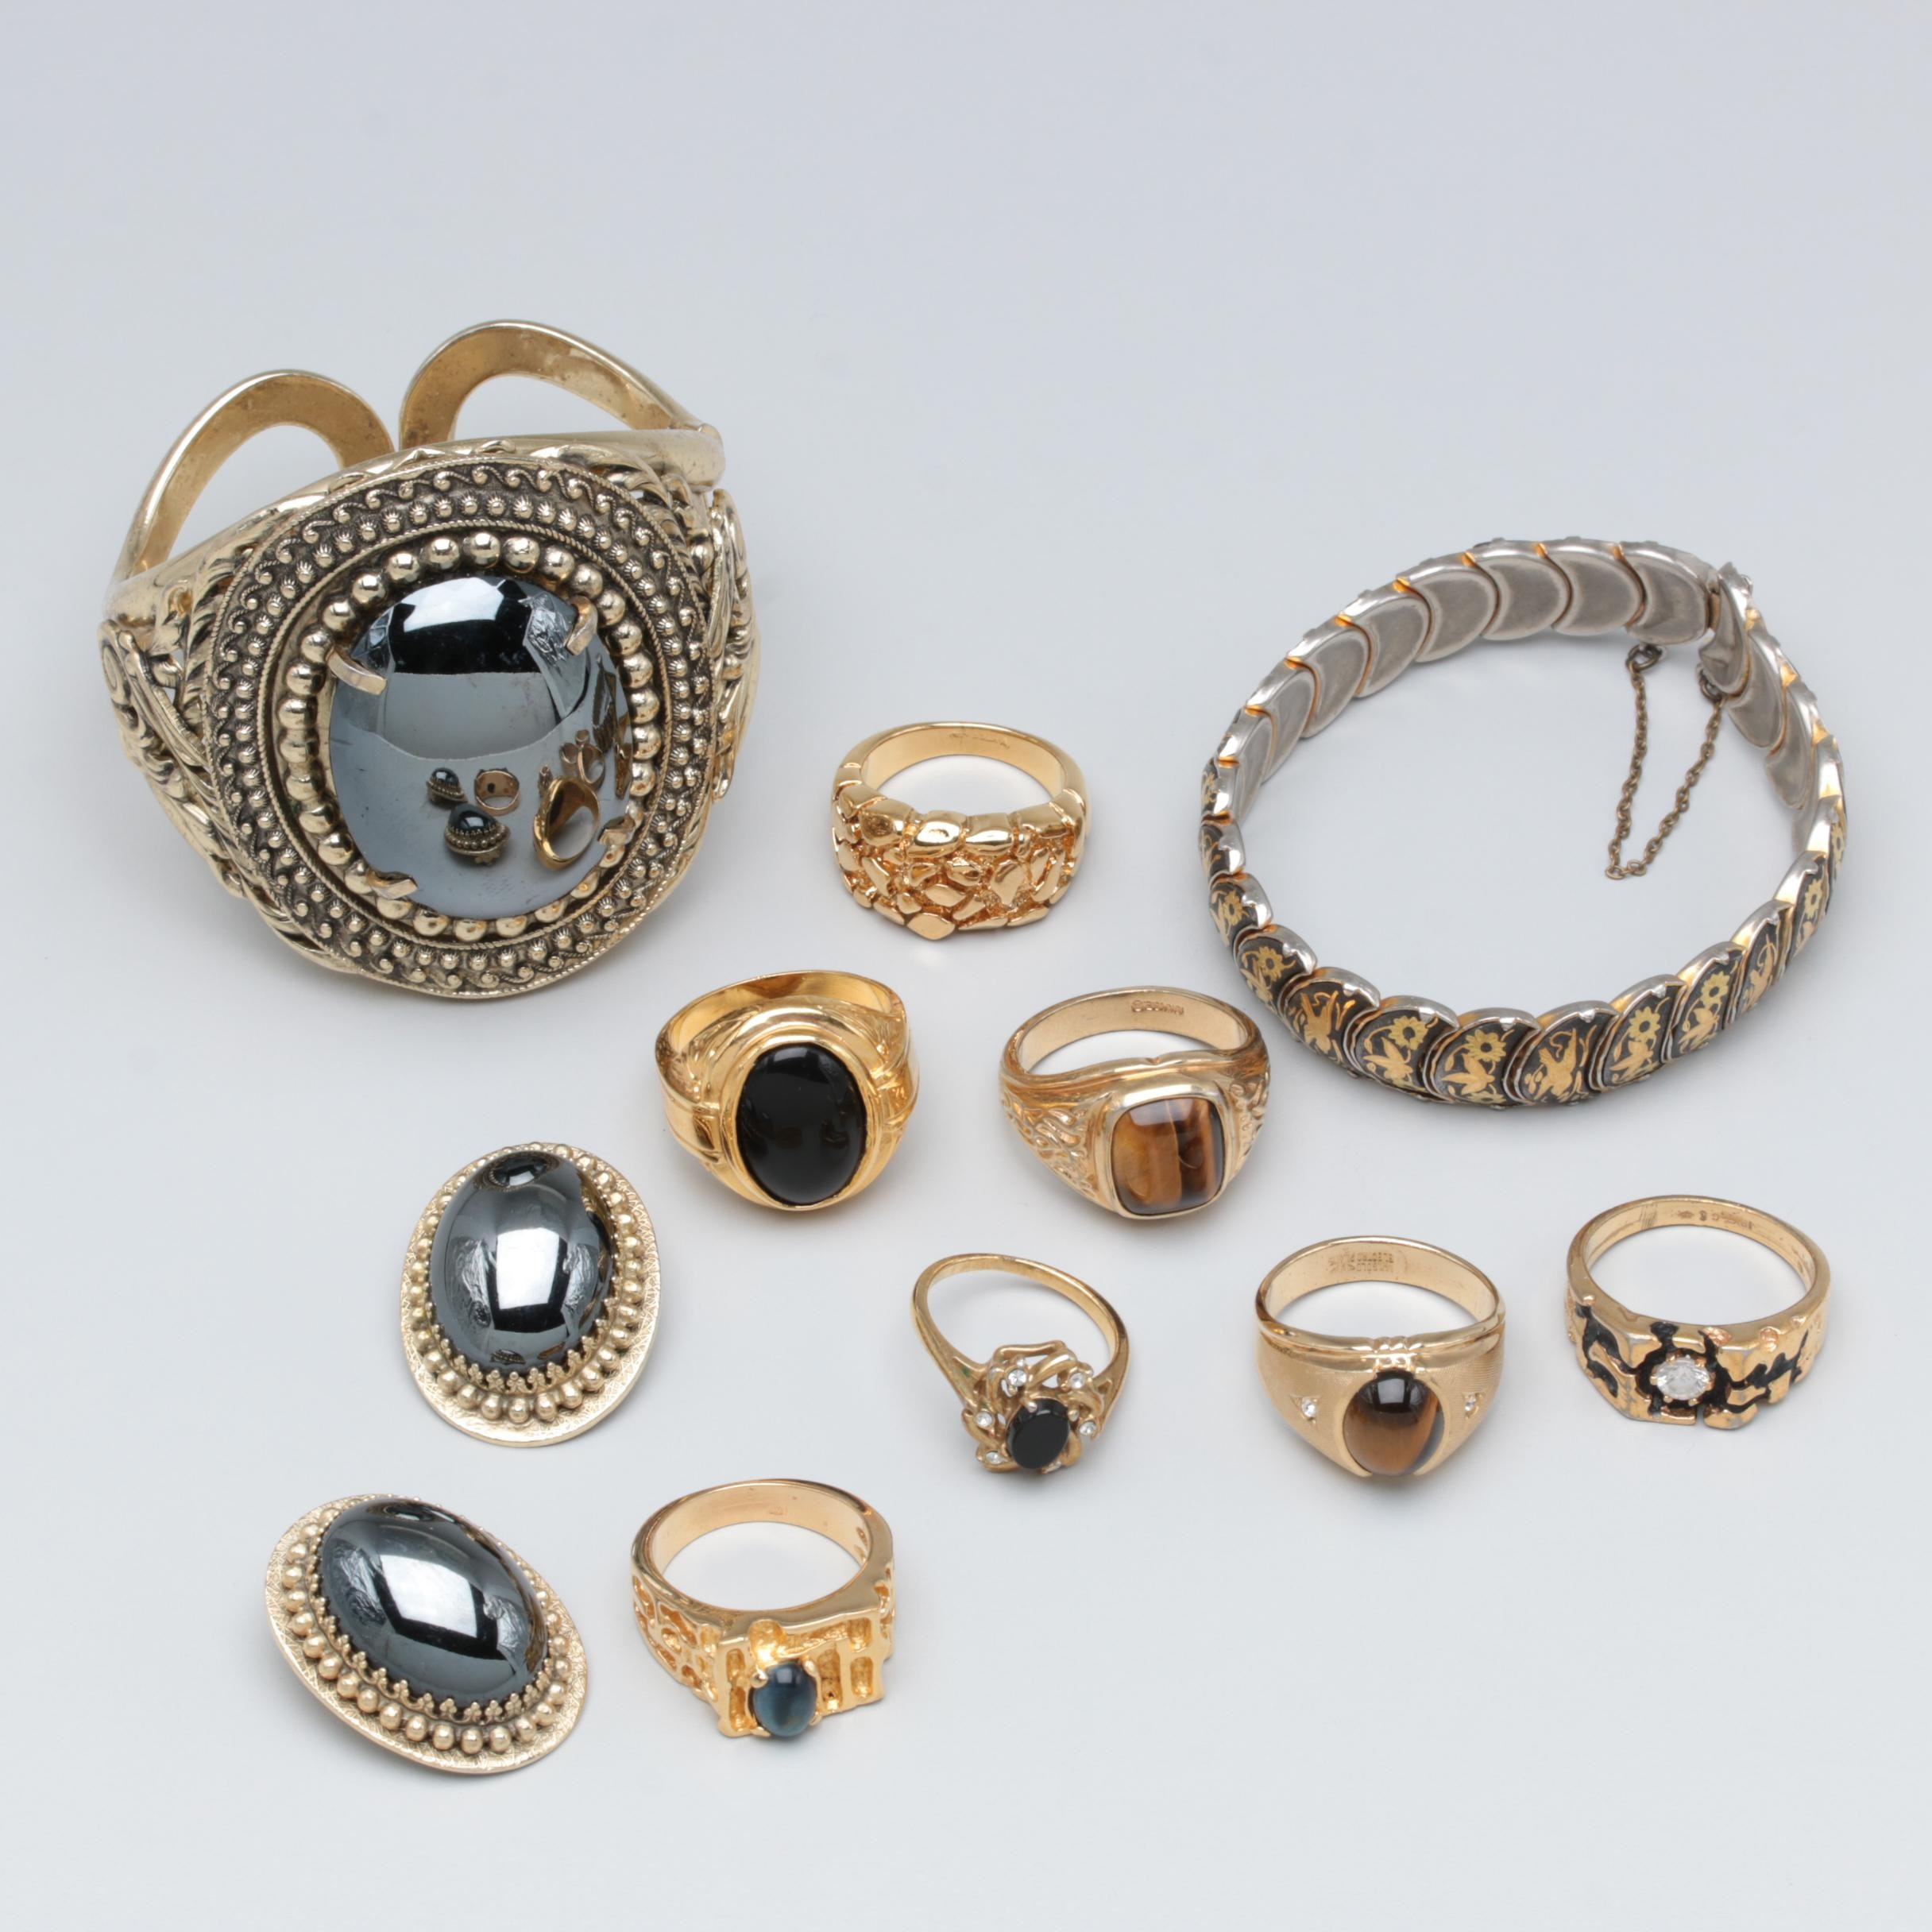 Assortment of Gold Tone Tiger's Eye, Black Onyx and Cubic Zirconia Jewelry